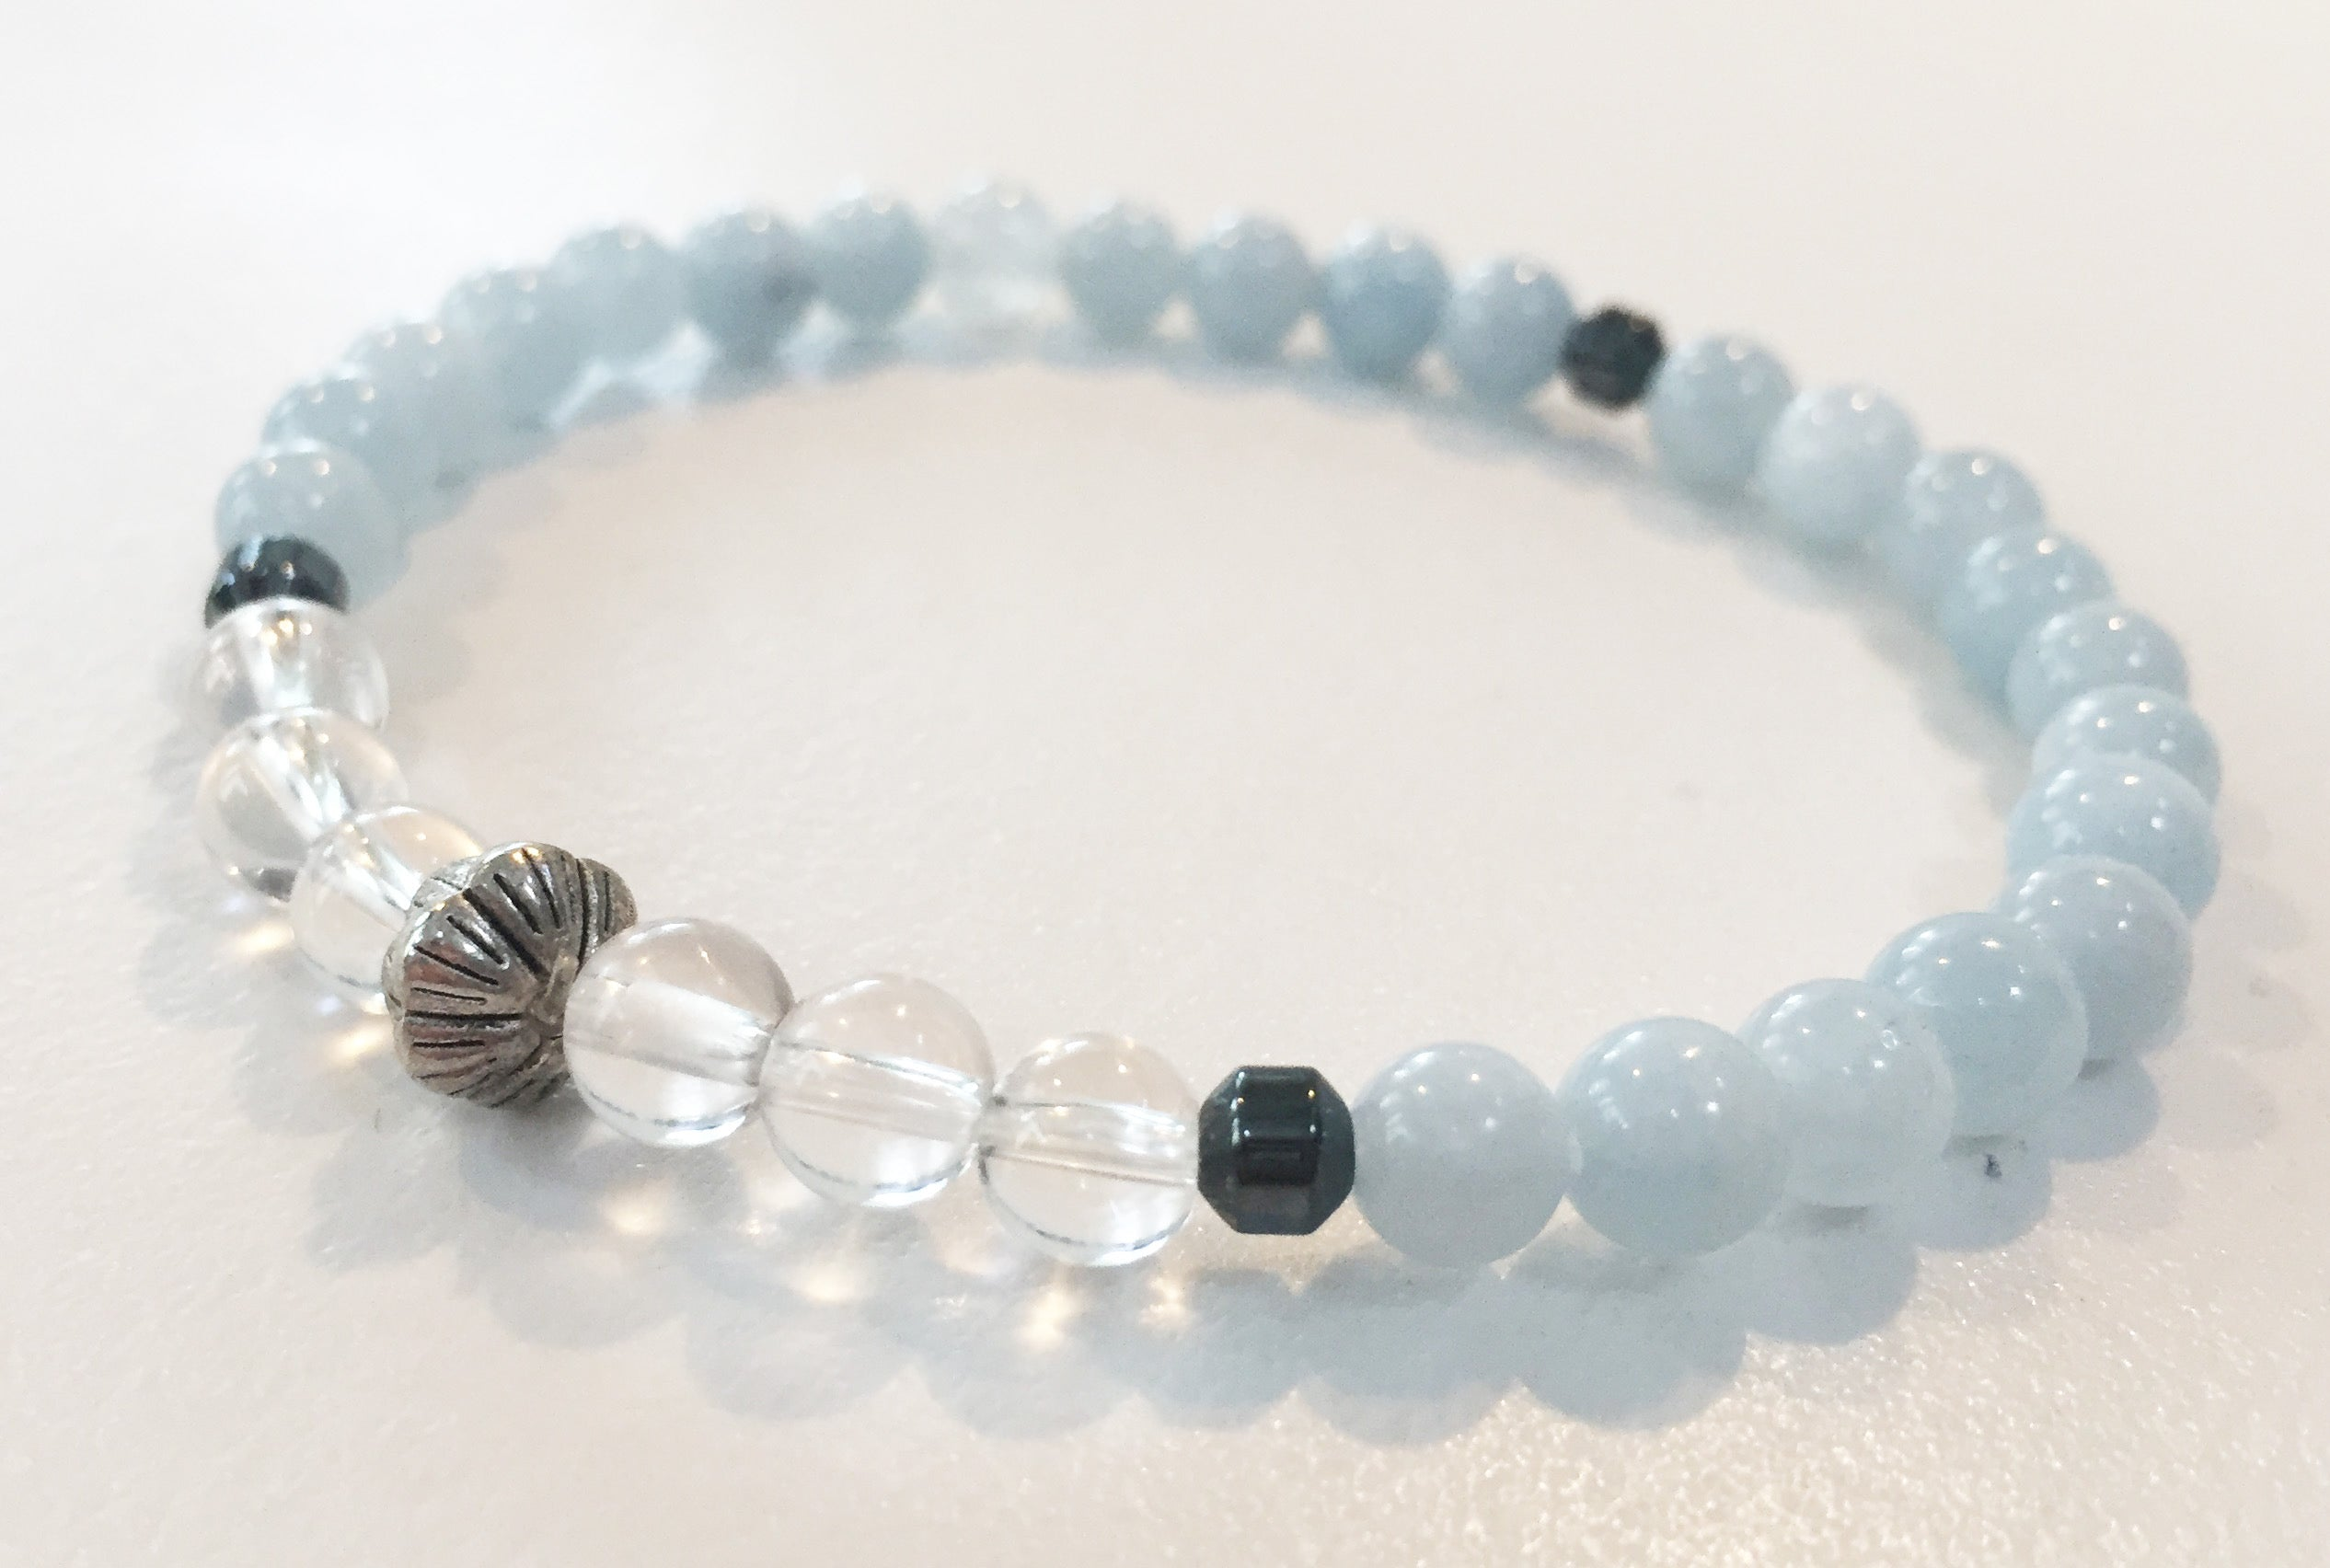 6mm Aquamarine & Quartz Crystal Stretch Bracelet with Lotus Flower